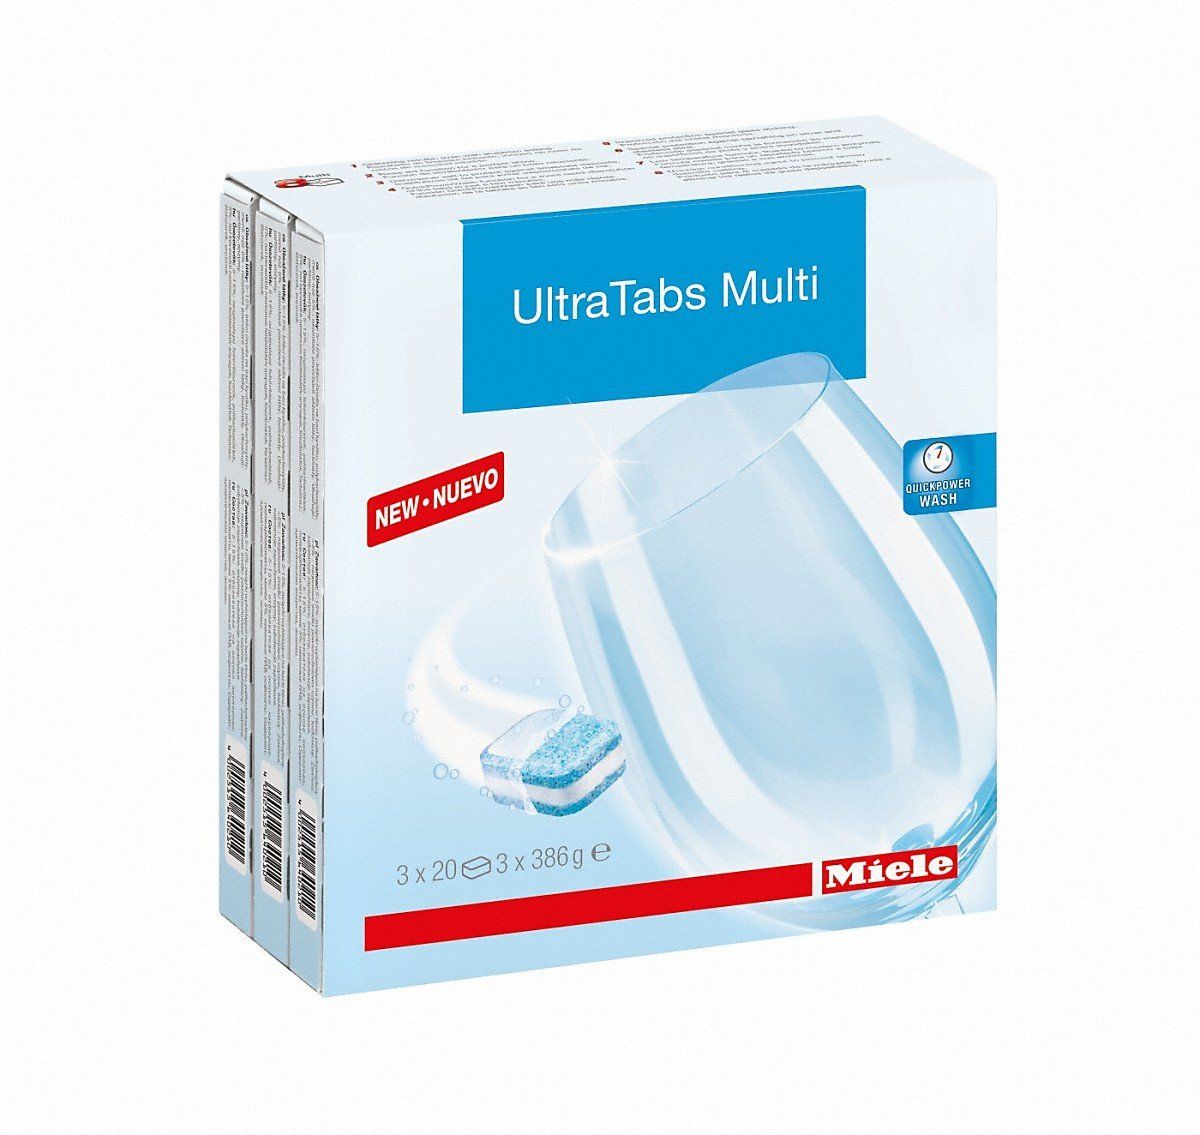 Miele Dishwasher Tablets